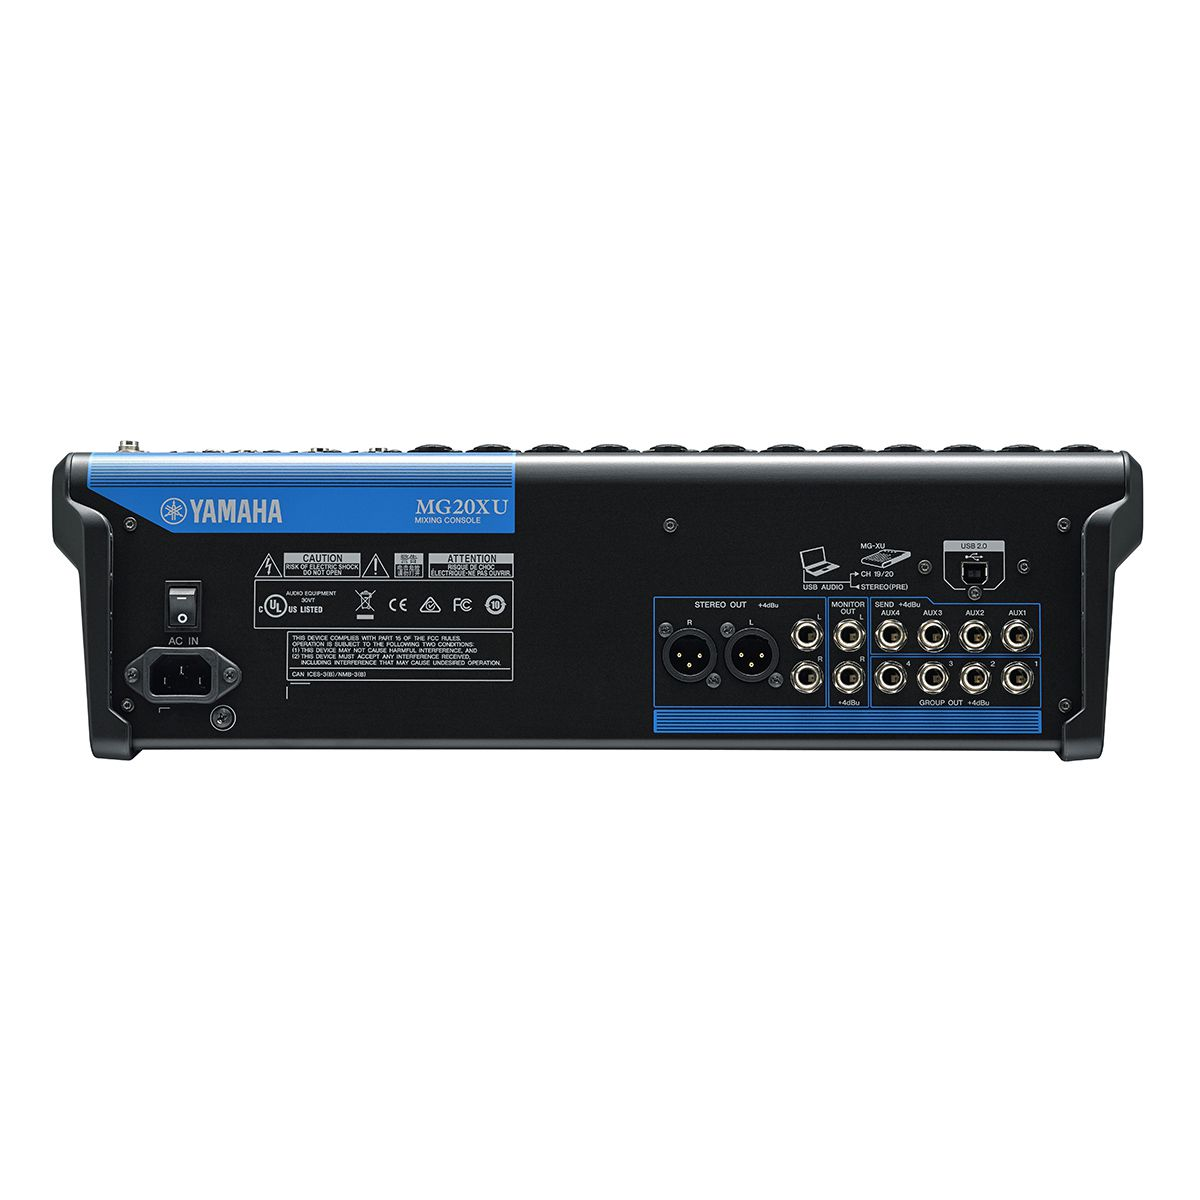 Mesa 20 In, 4 Aux, 4 out, USB e FX Yamaha MG20XU